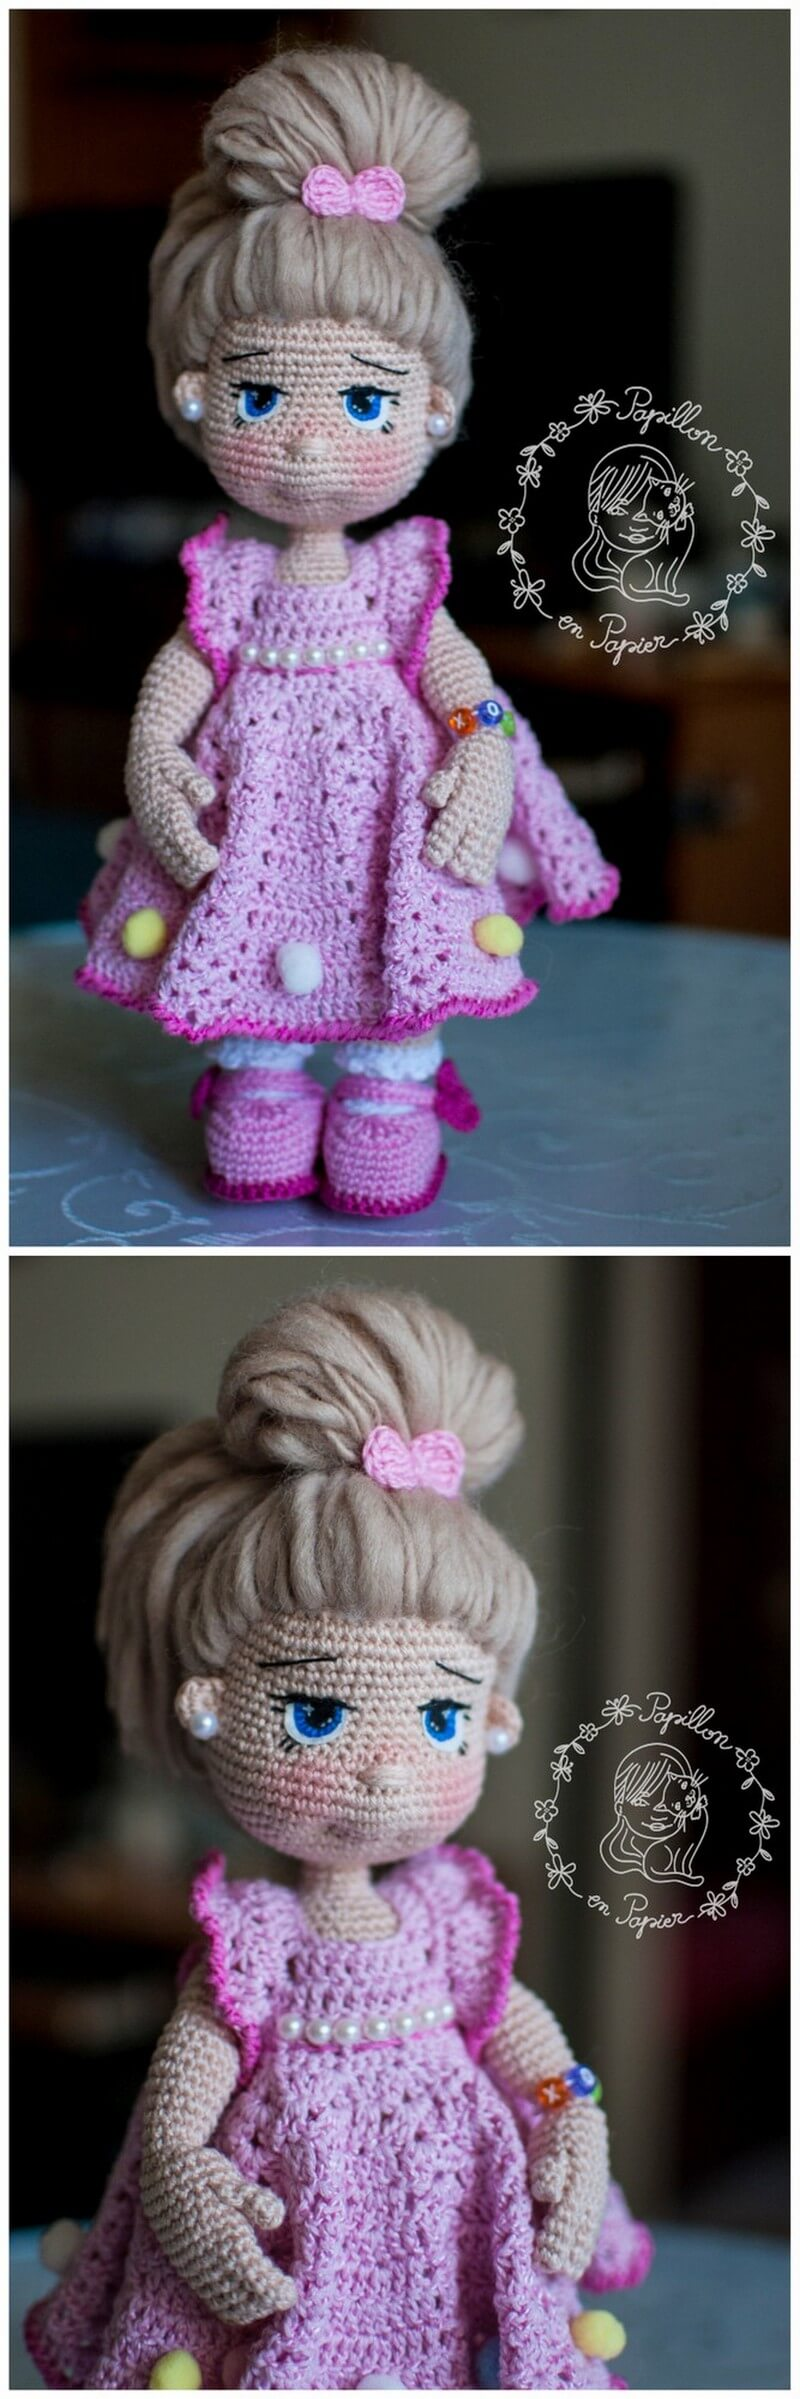 Crochet Amigurumi Doll Pattern (14)